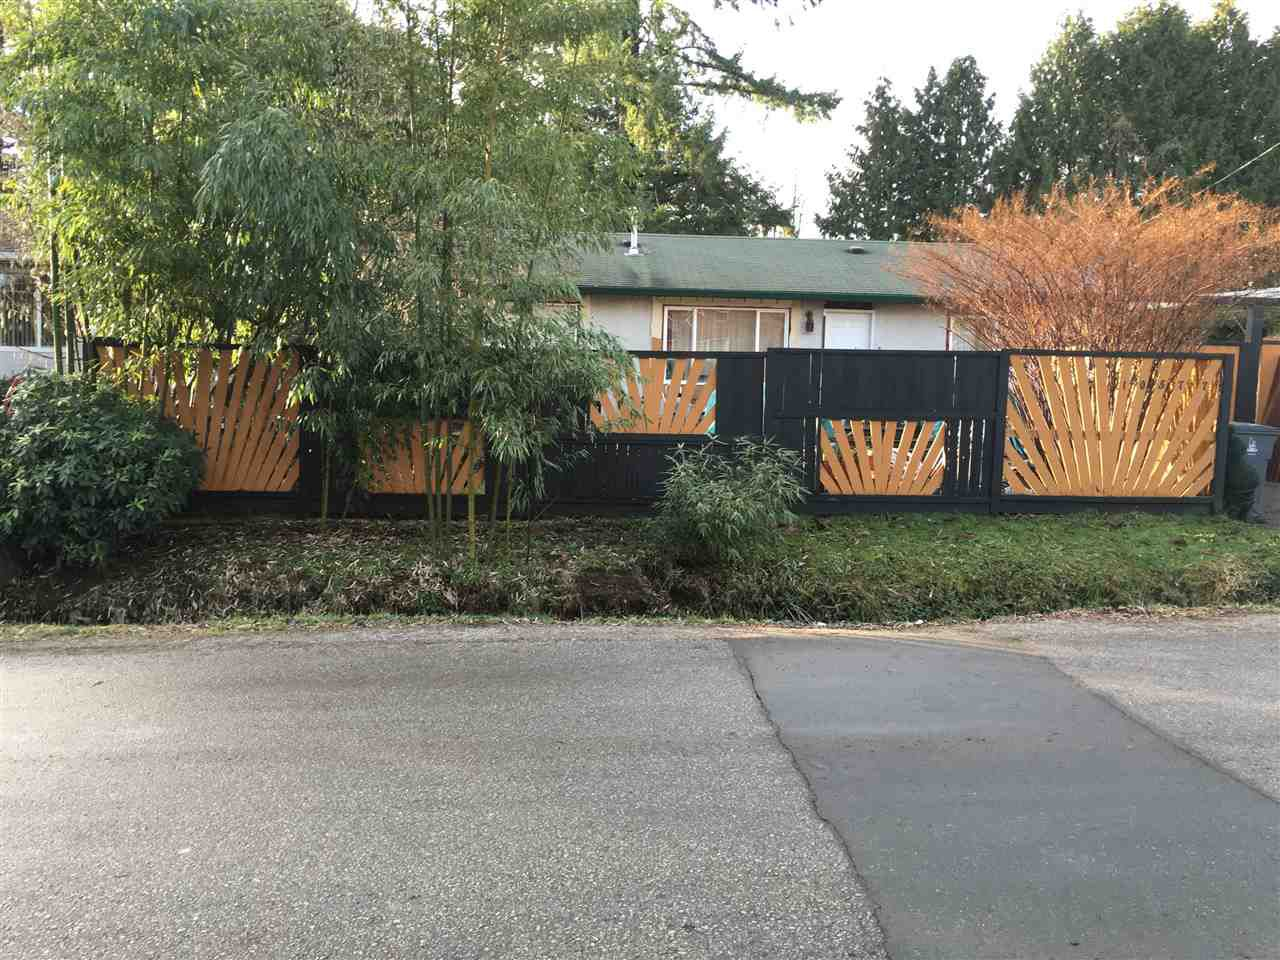 """Main Photo: 10577 138A Street in Surrey: Whalley House for sale in """"N. Whalley/Bridgeview"""" (North Surrey)  : MLS®# R2076006"""